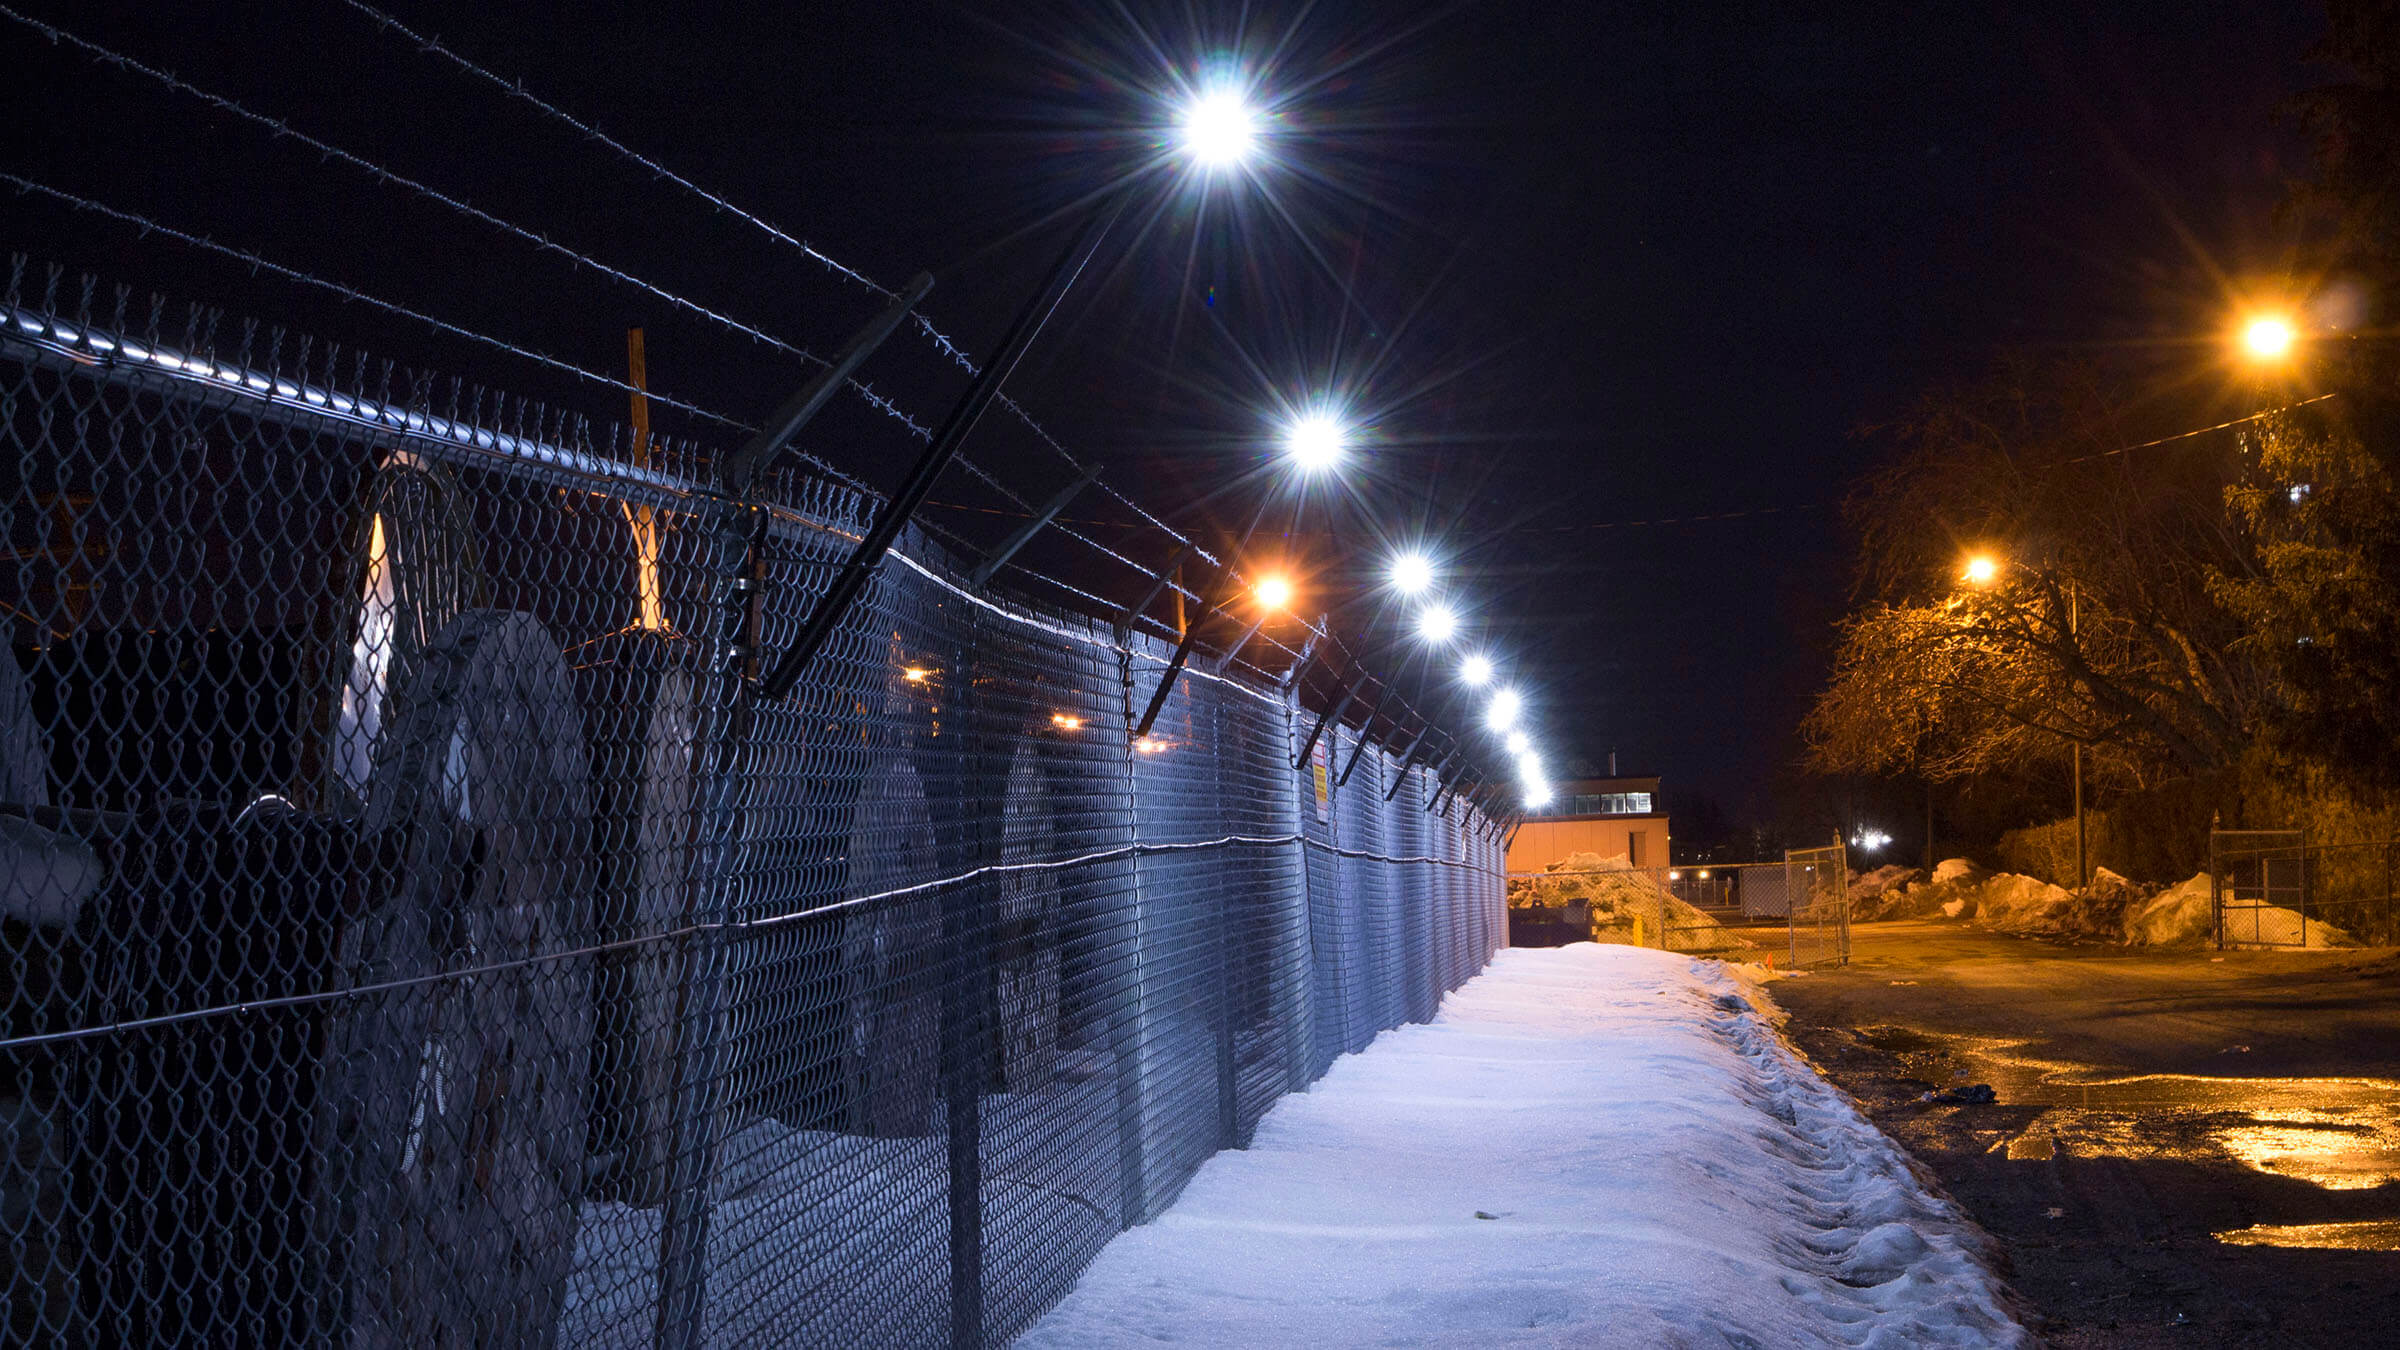 Senstar LM100 hybrid perimeter intrusion detection and intelligent lighting system and FlexZone fence-mounted intrusion detection sensor along the fence surrounding an electrical utility site to show examples of Senstar's innovative security solutions